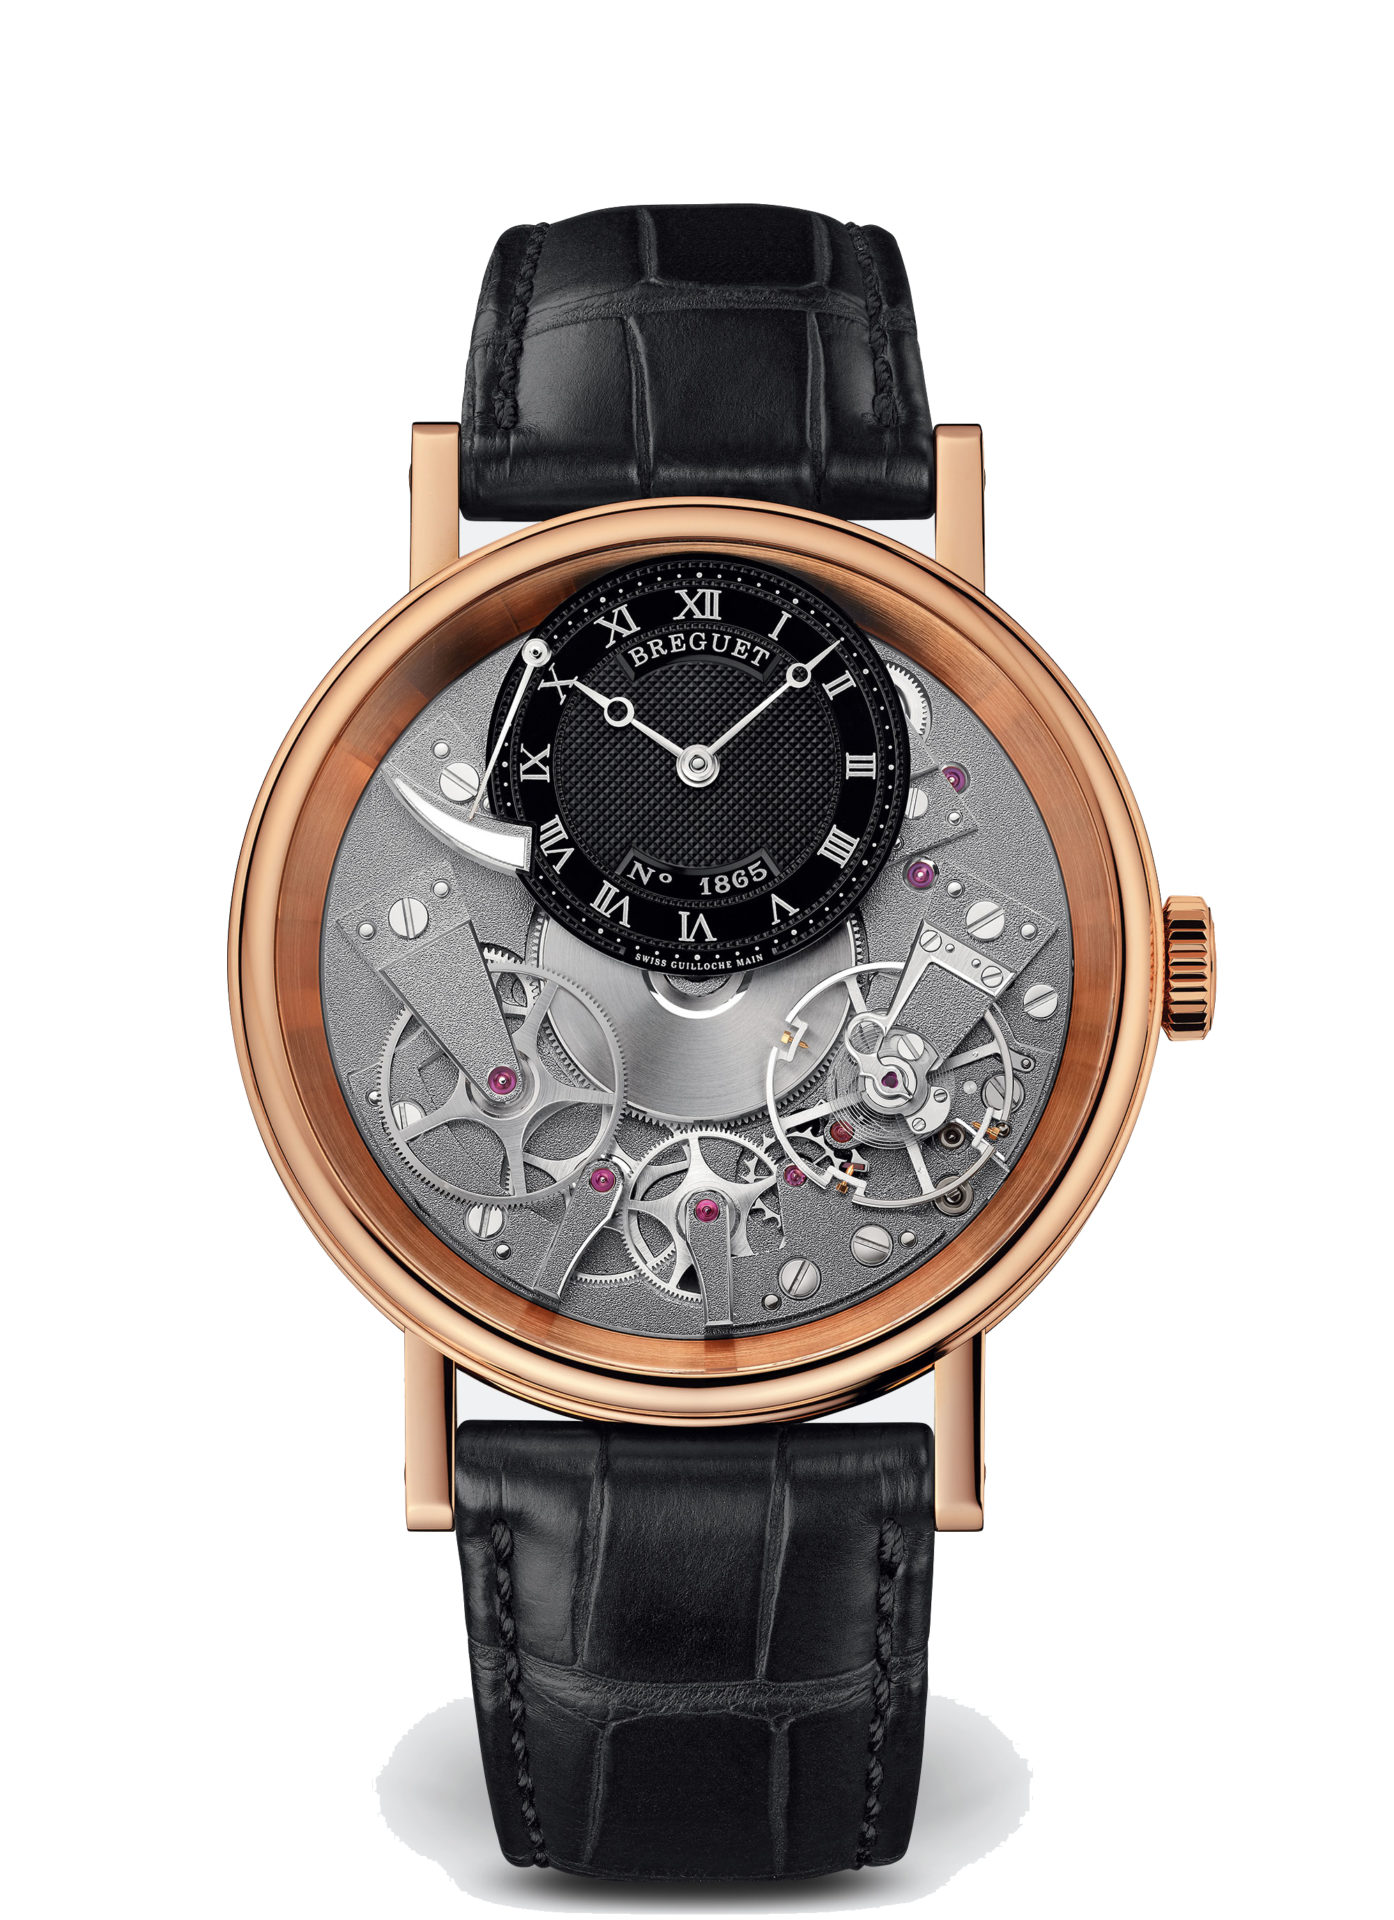 Breguet-Tradition-Hall-of-Time-7057br-g9-9w6